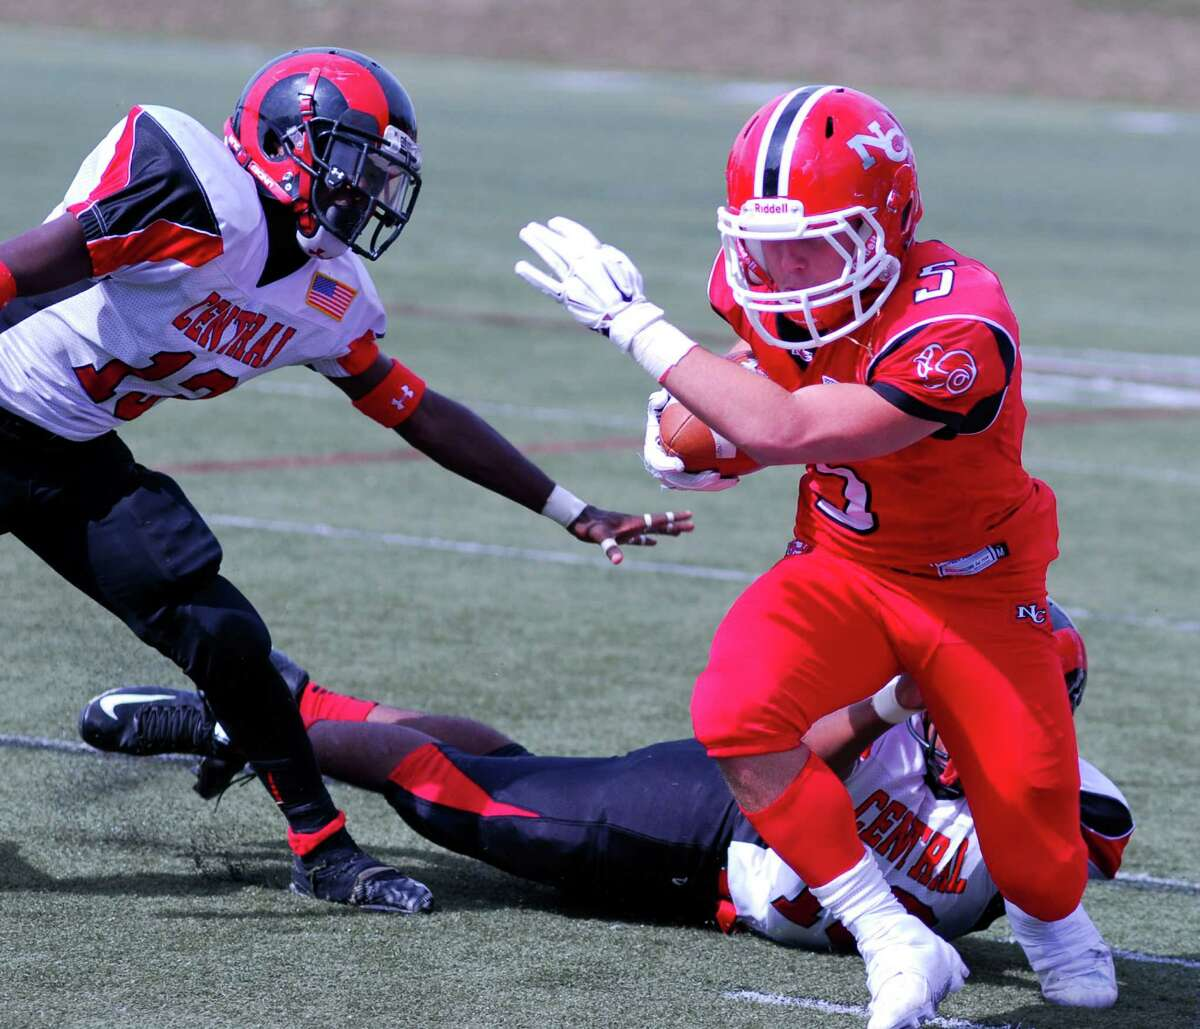 New Canaan's Matt Cognetta, right, breaks a tackle from a Bridgeport Central player during a football game at New Canaan High School on Saturday, Sept. 26 2015.